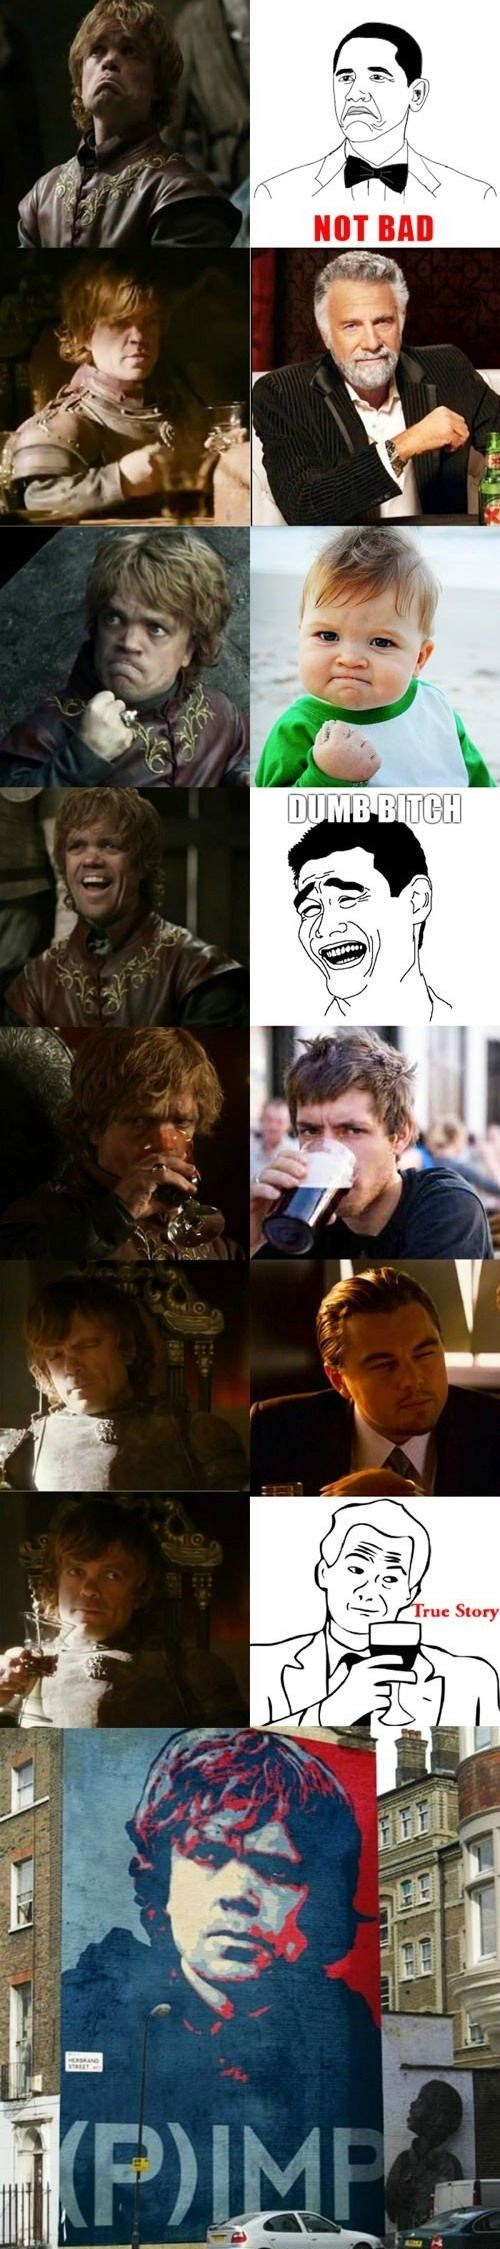 The meme faces of Peter Dinklage